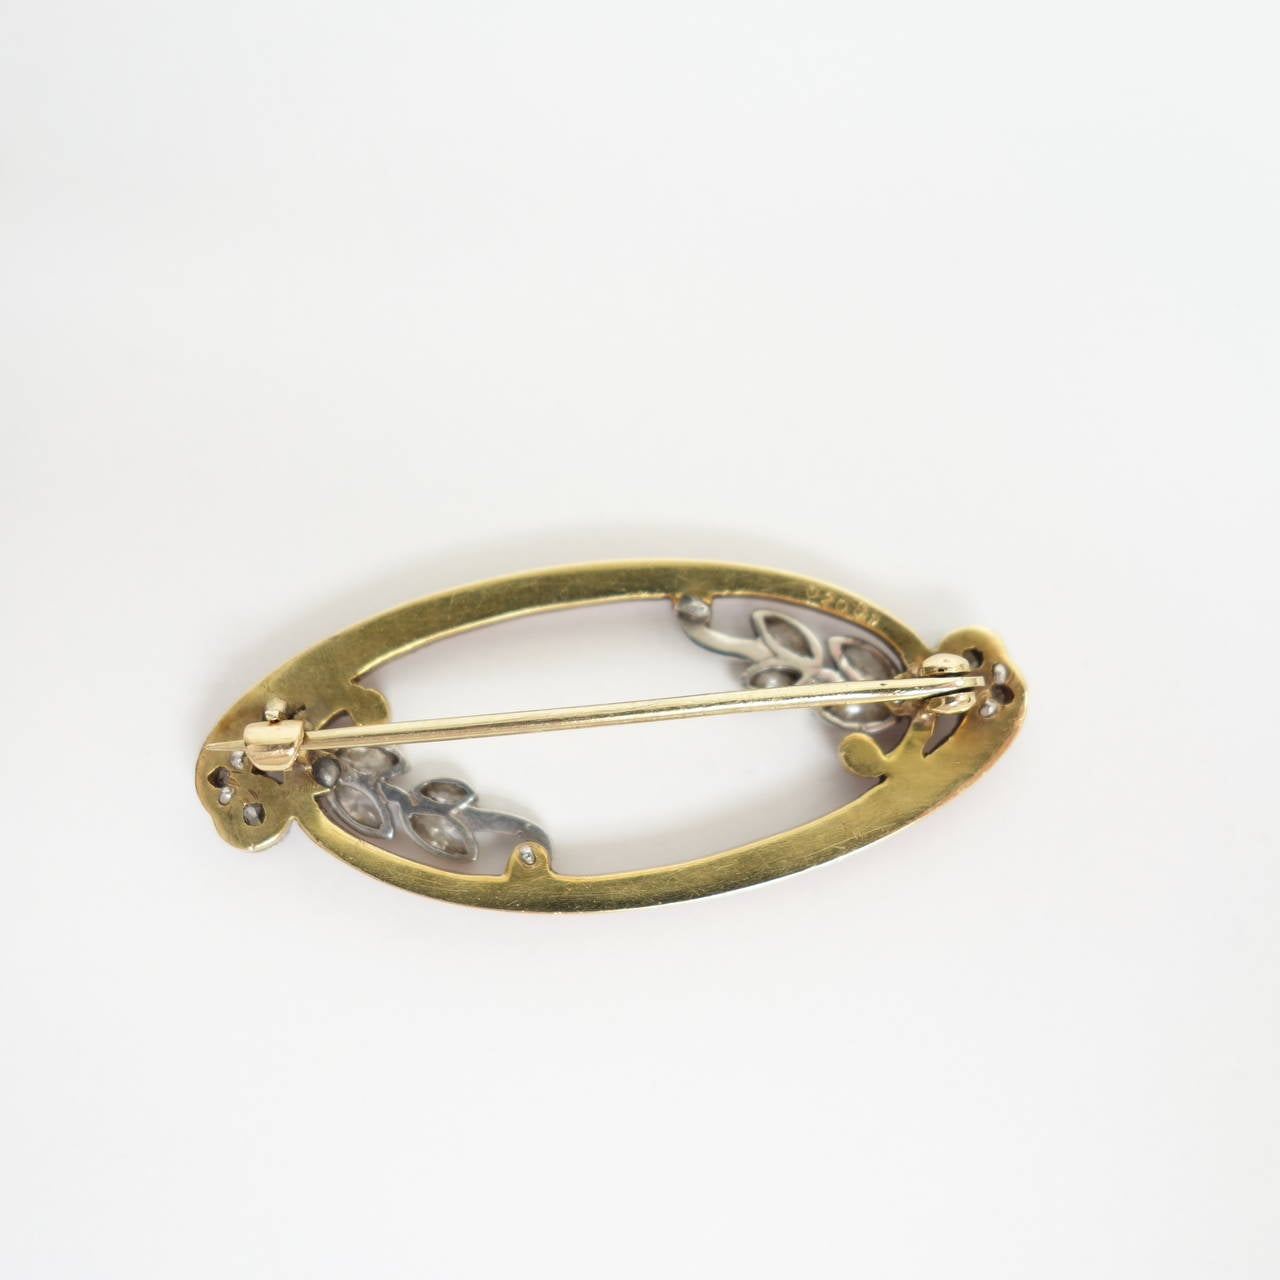 An elongated swirly design, composed of an 18K yellow gold red enamel frame decorated with diamond set platinum leafs on wine . Approximate total diamond weight: 0.50cttw. Color: G-H, Clarity: VS1-VS2. The brooch is in excellent condition, no damage